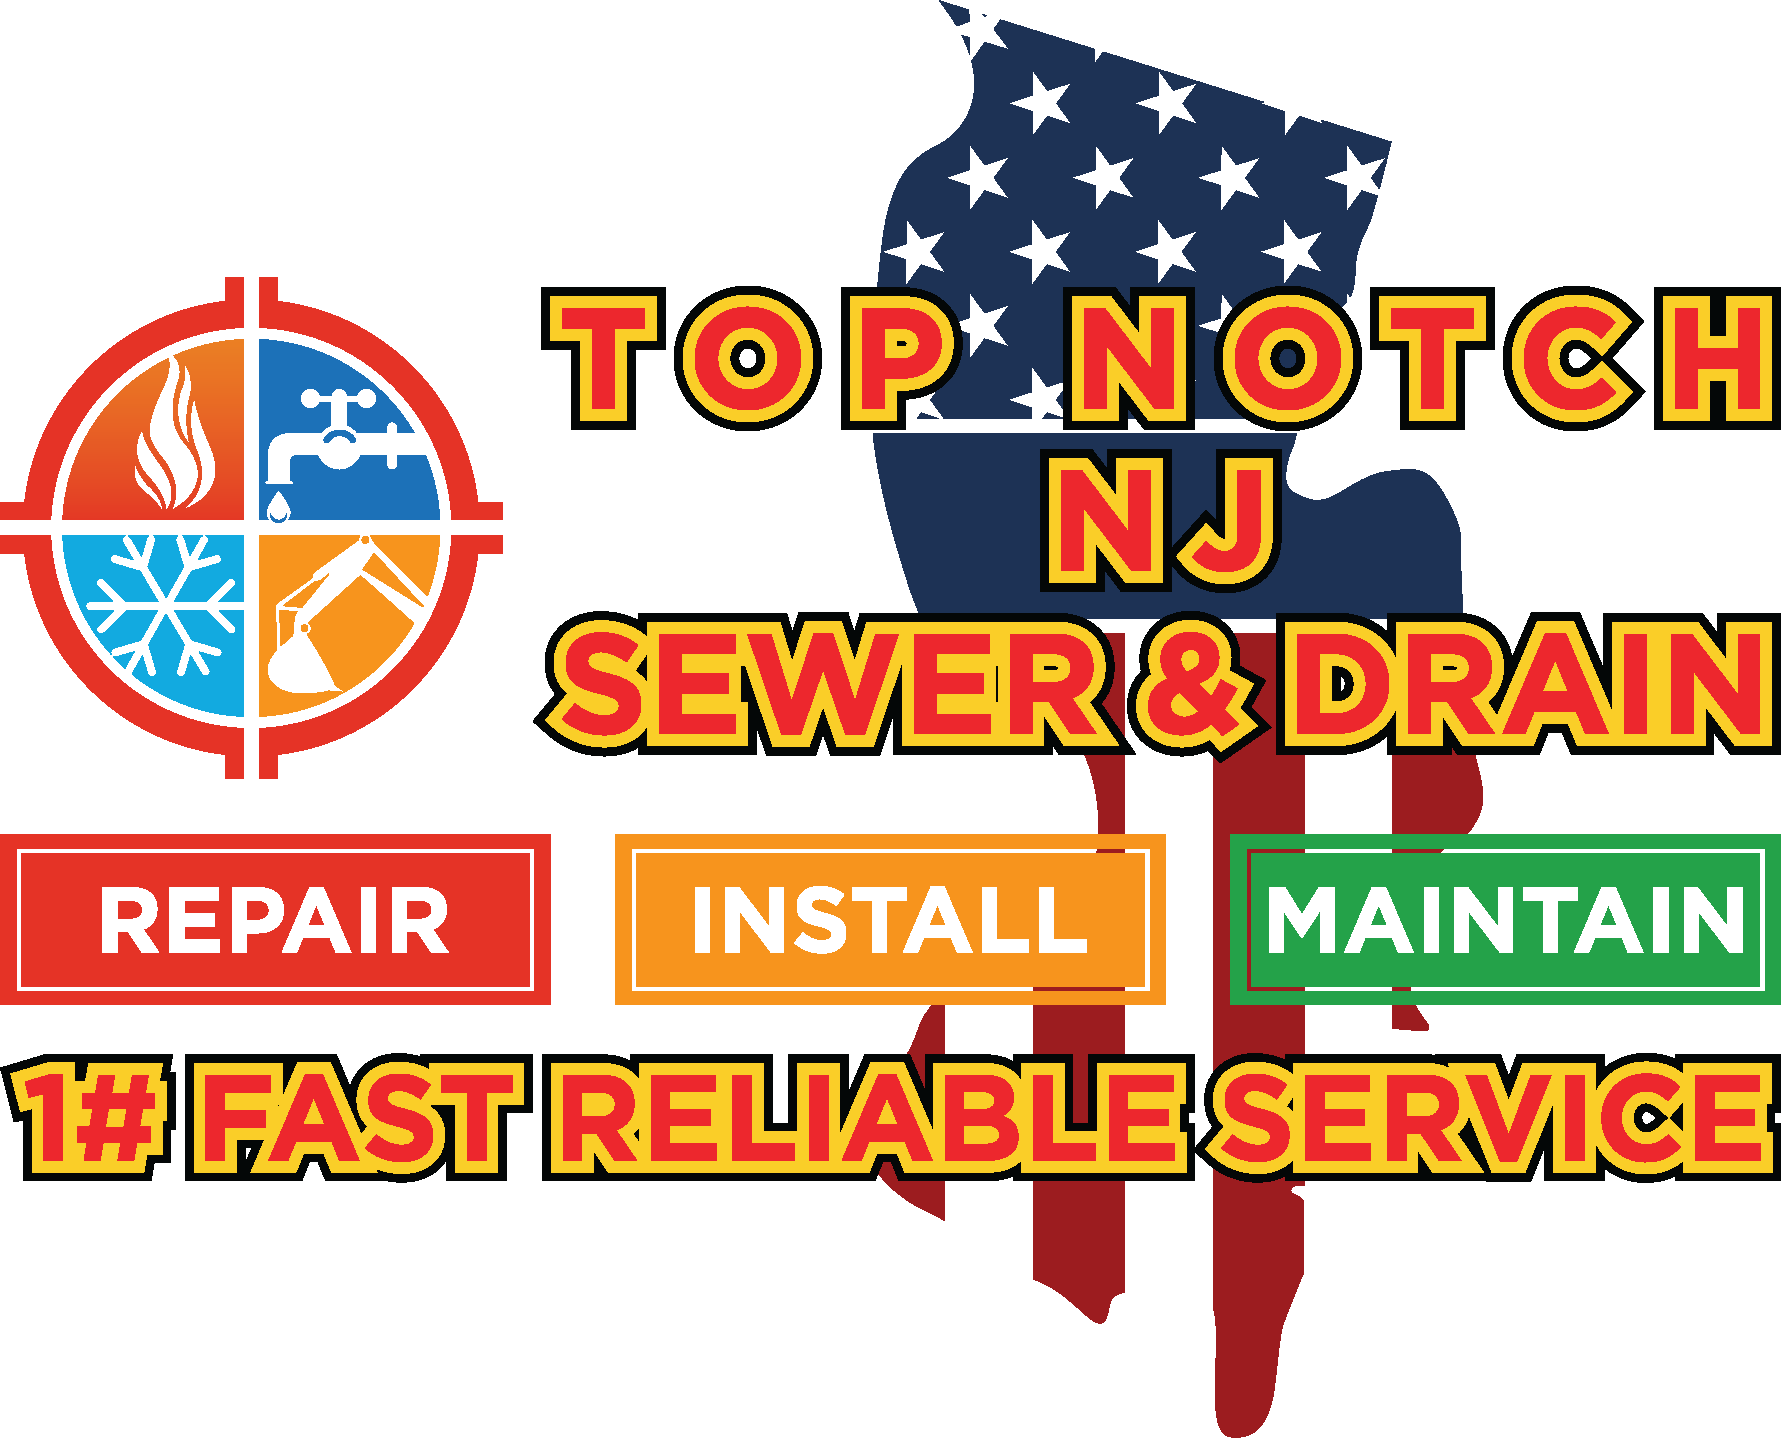 Top notch nj sewer & drain